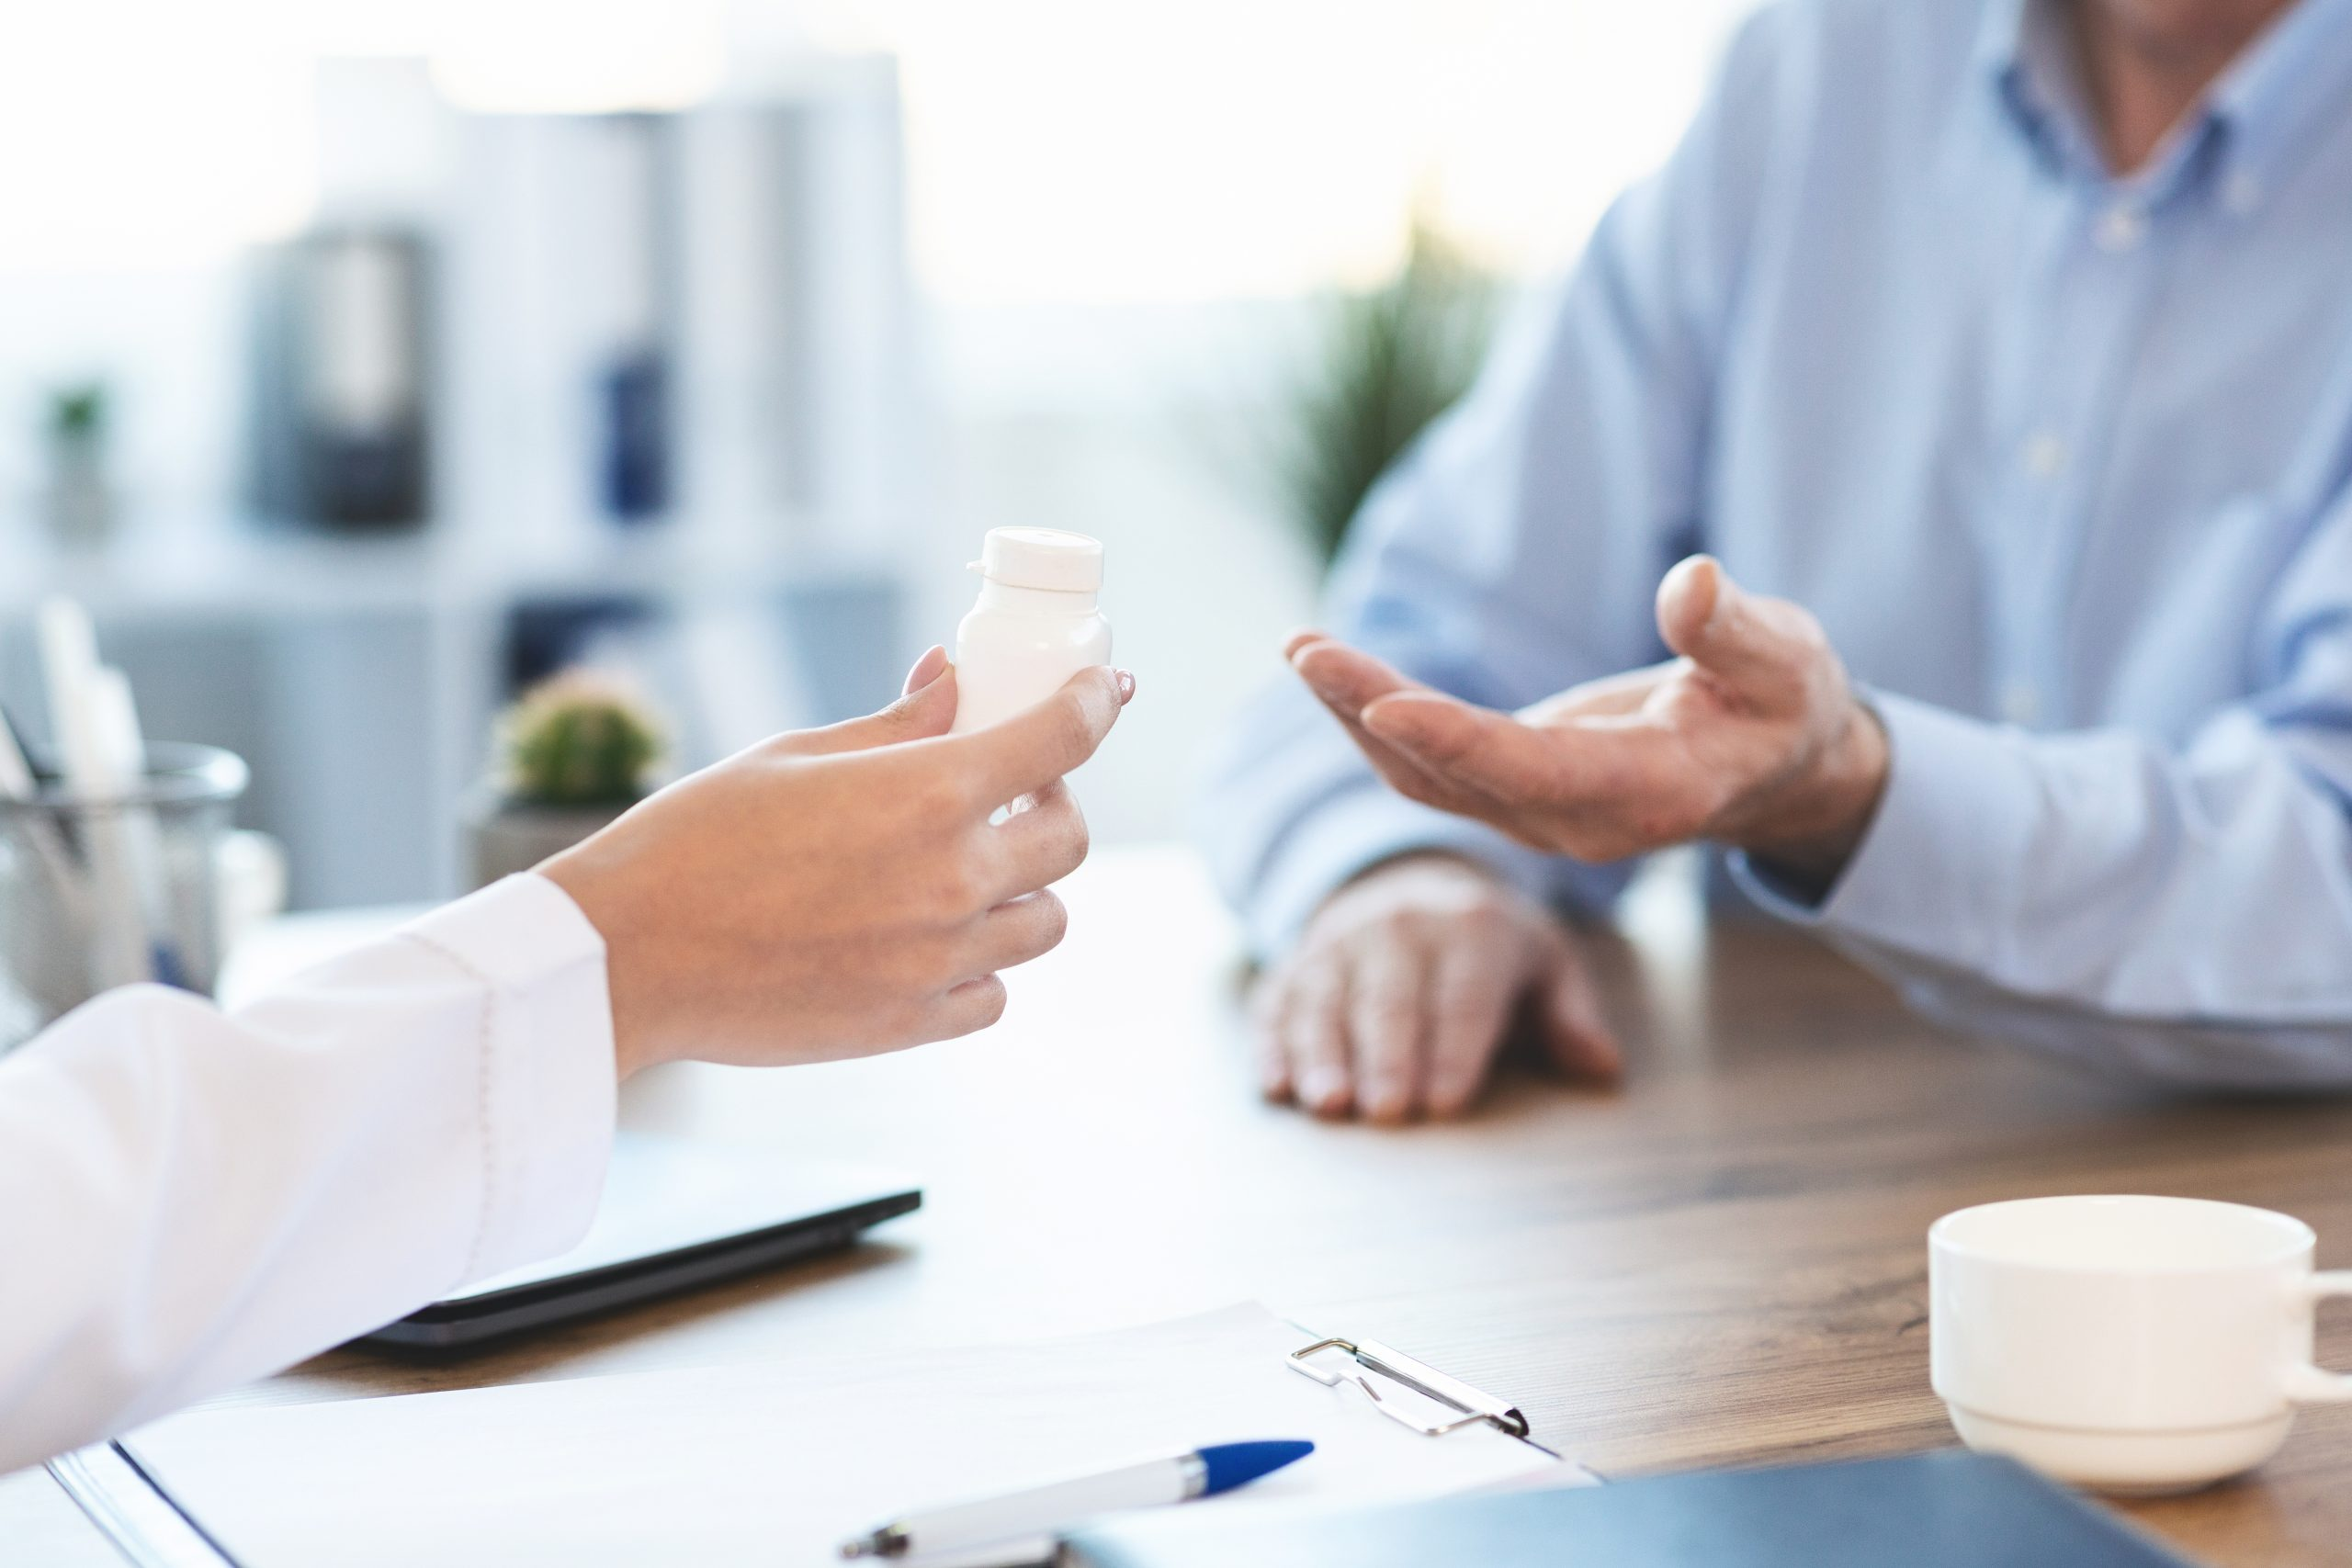 Medicine Concept. Close up of doctor giving medication pill bottle to retired man, copy space; Shutterstock ID 1591201198; Use (Print or Web): -; Client/Licensee: -